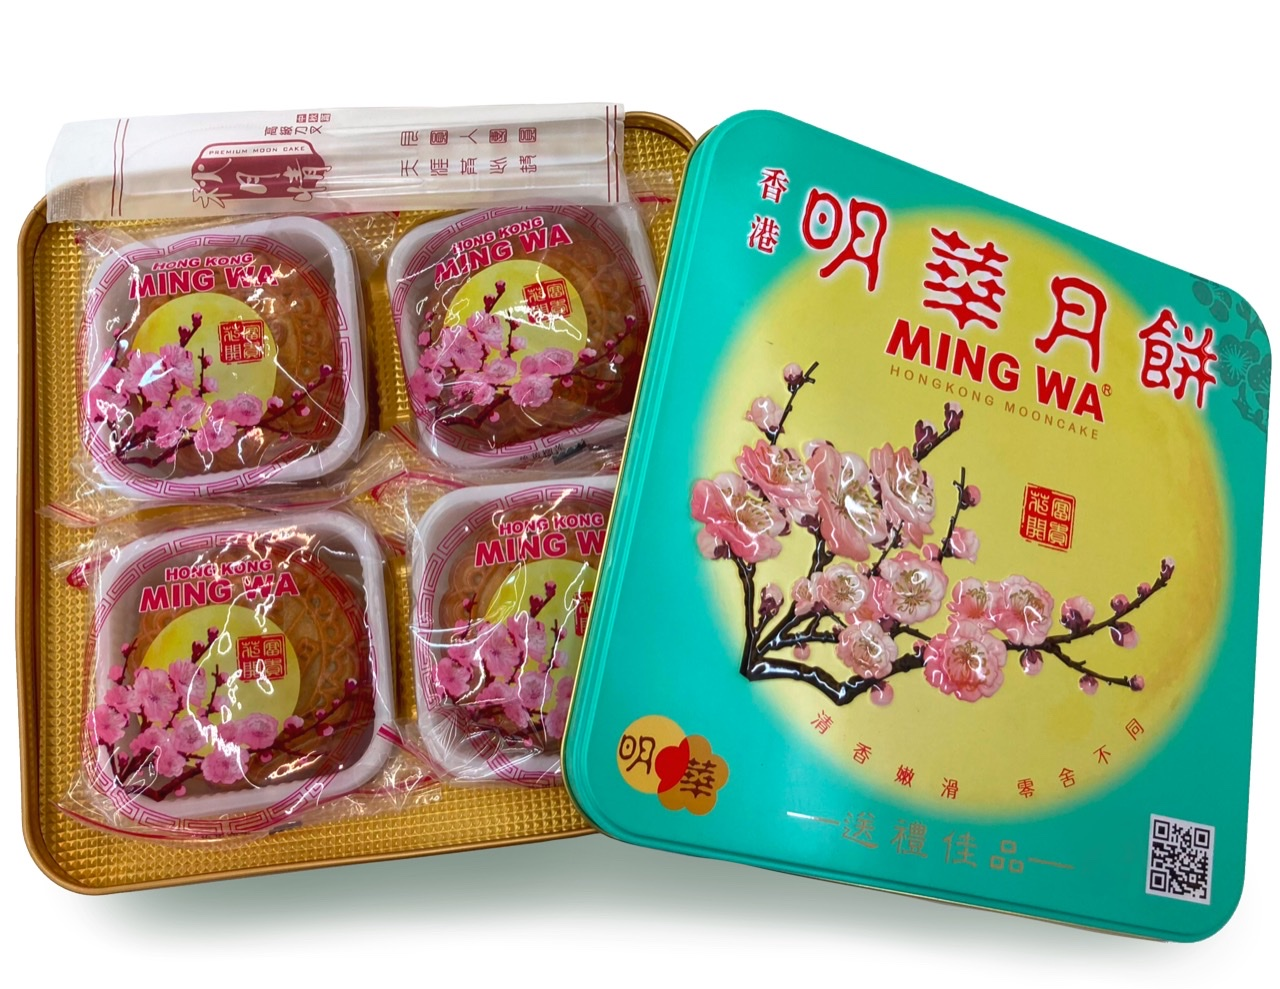 Mooncake Durian Flavor, with 1 yolk and White Lotus Paste by Ming Wa